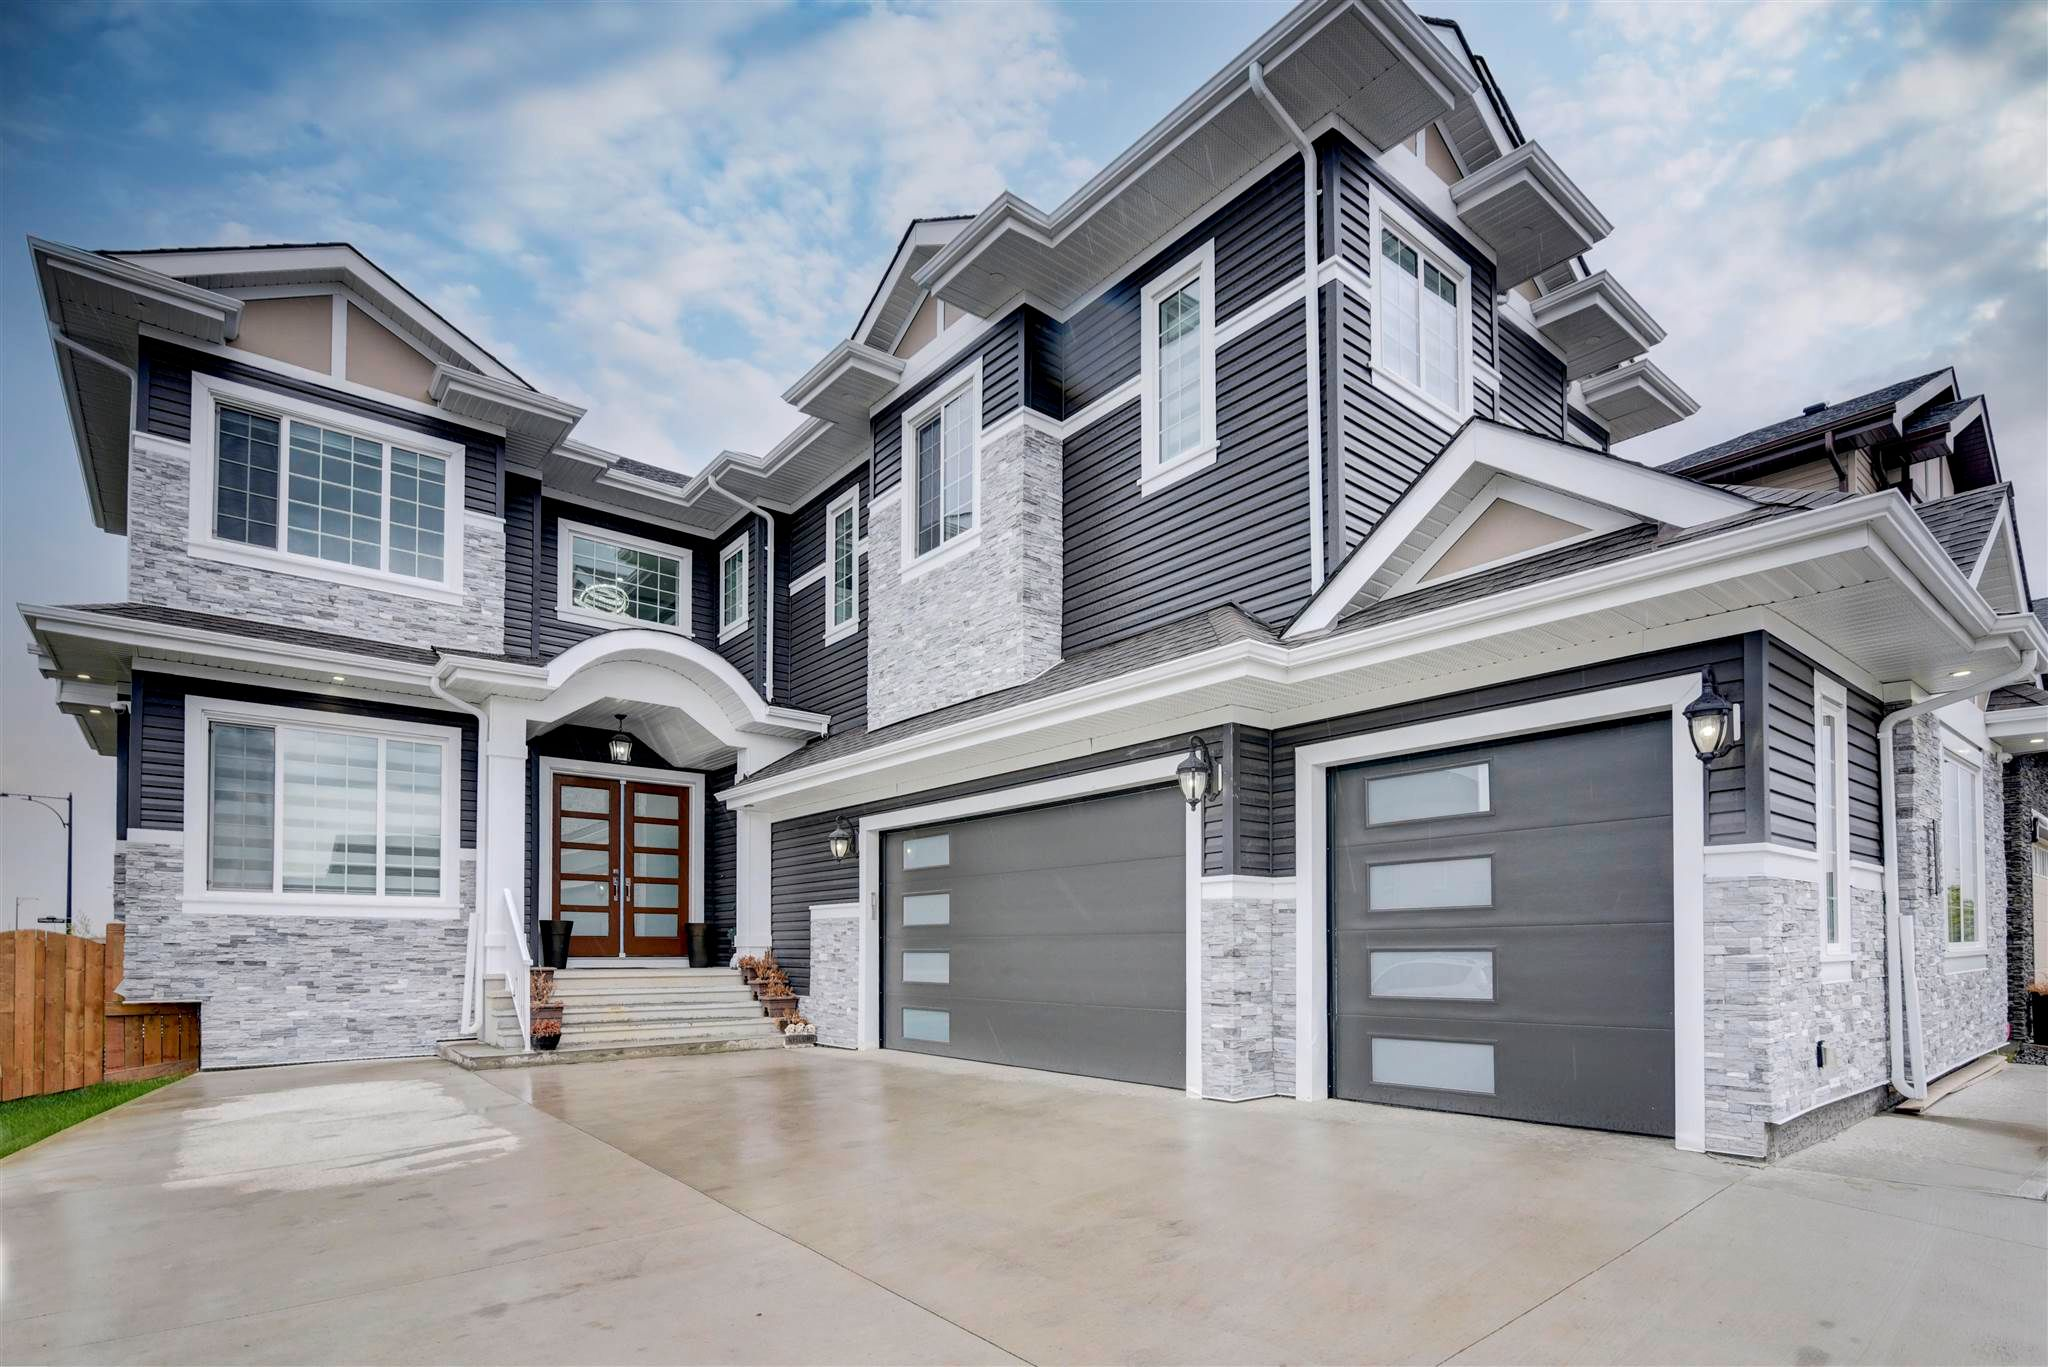 Main Photo: 4145 CHARLES Link in Edmonton: Zone 55 House for sale : MLS®# E4246039